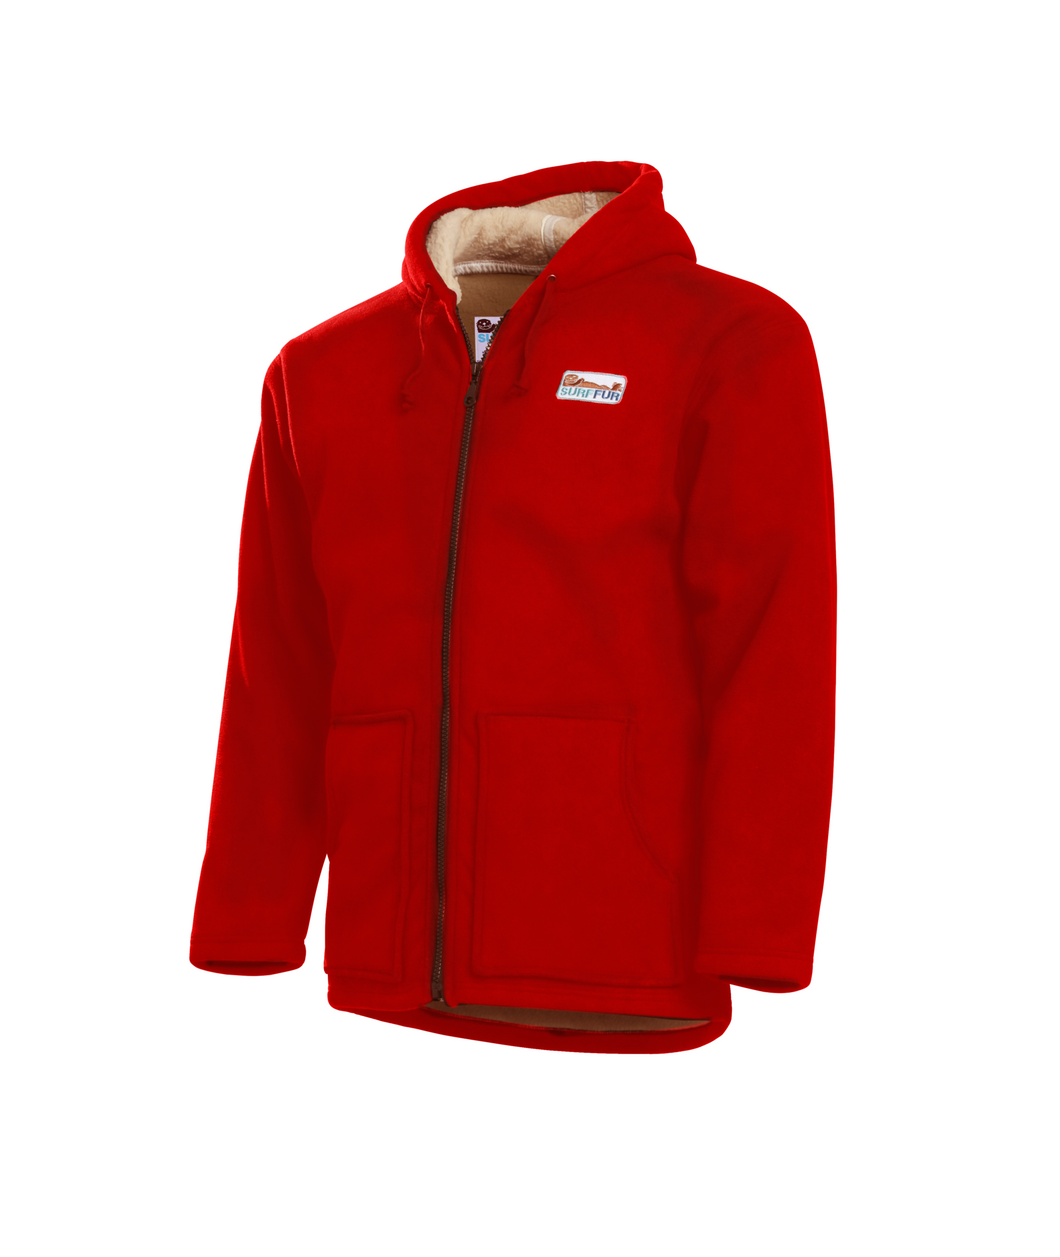 SurfCheck Hoodie in RED